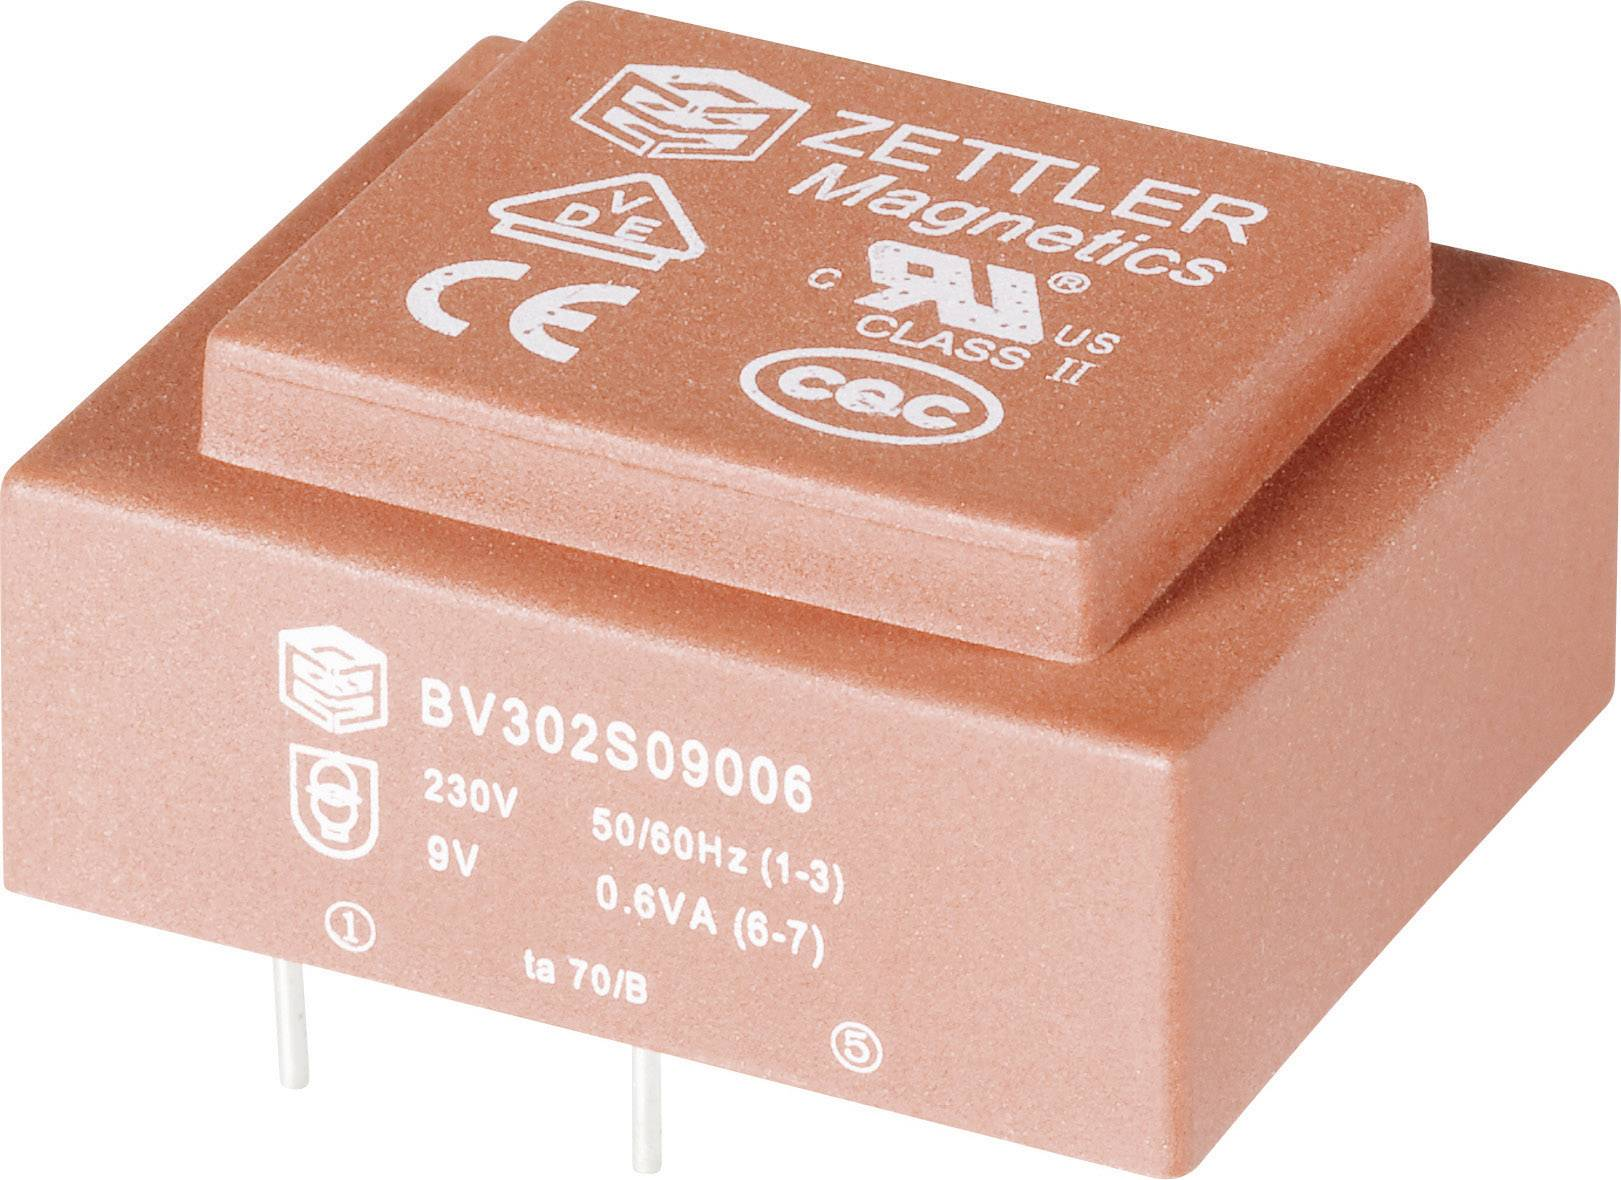 Transformátor do DPS Zettler Magnetics El30, 230 V/6 V, 100 mA, 1,8 VA